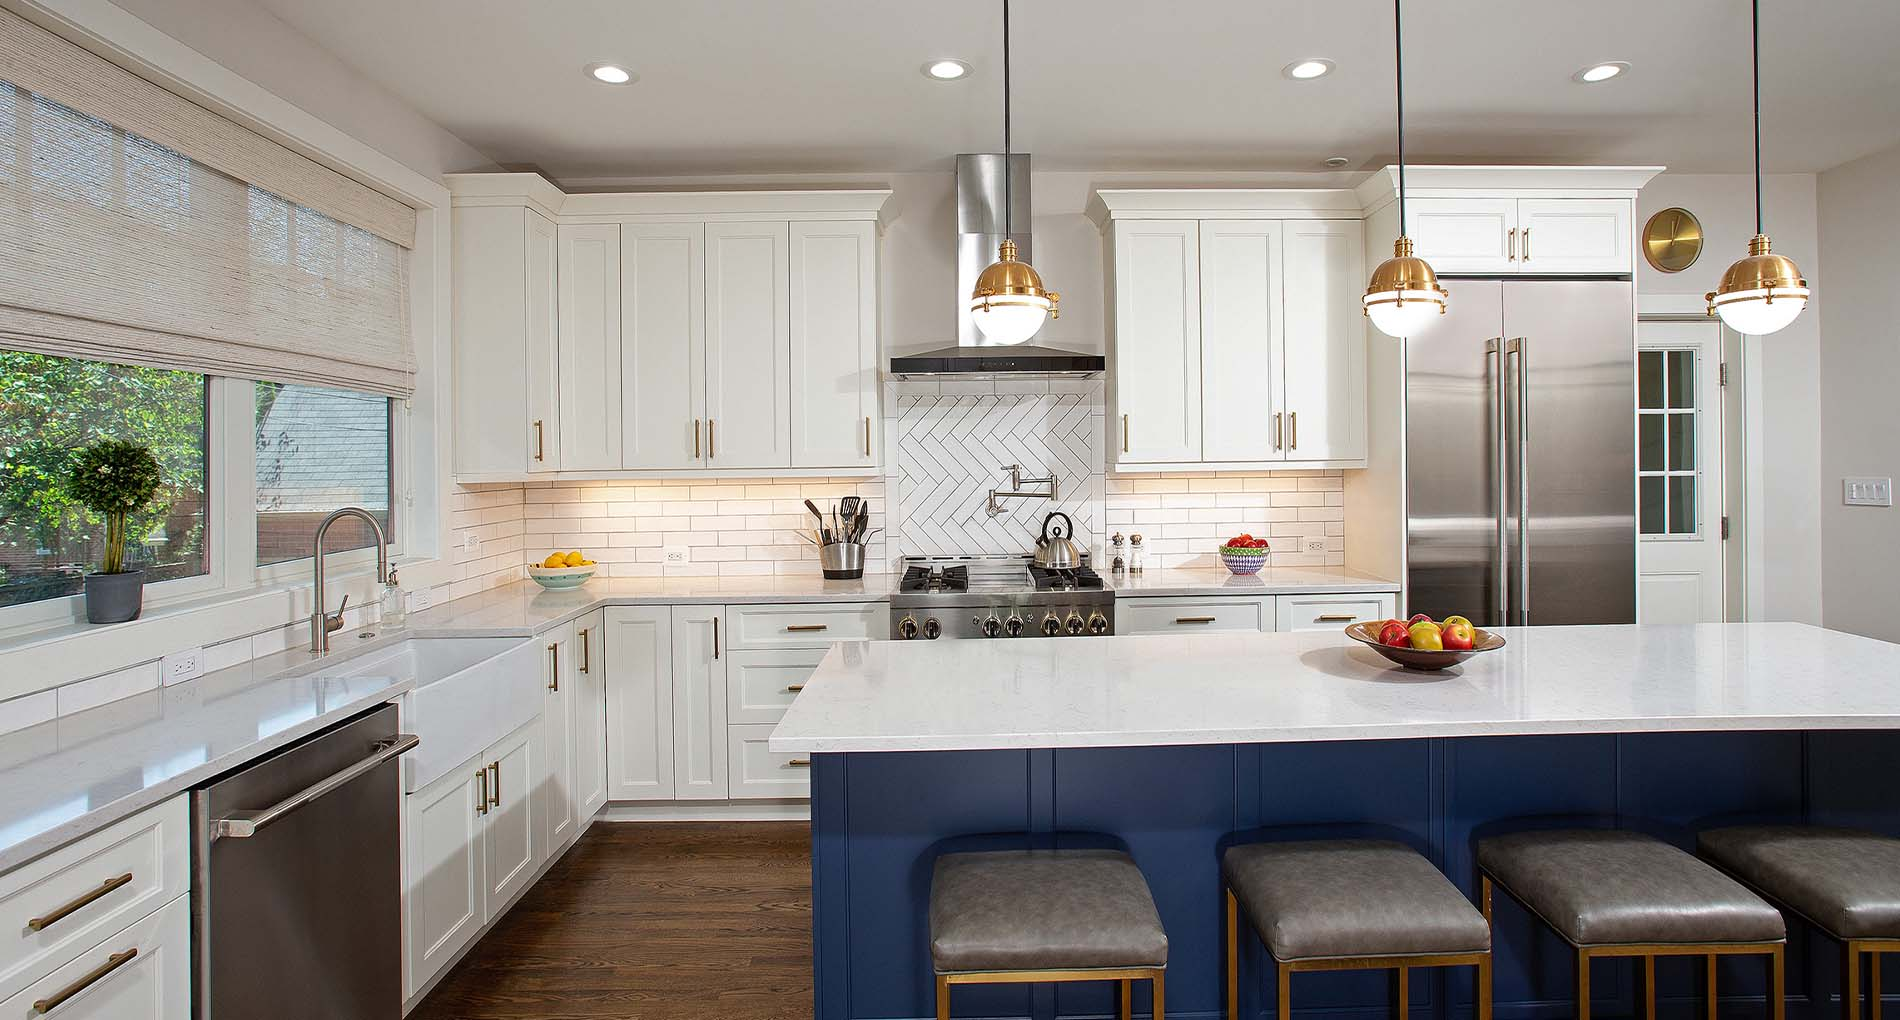 Oakland Home Remodel and Addition